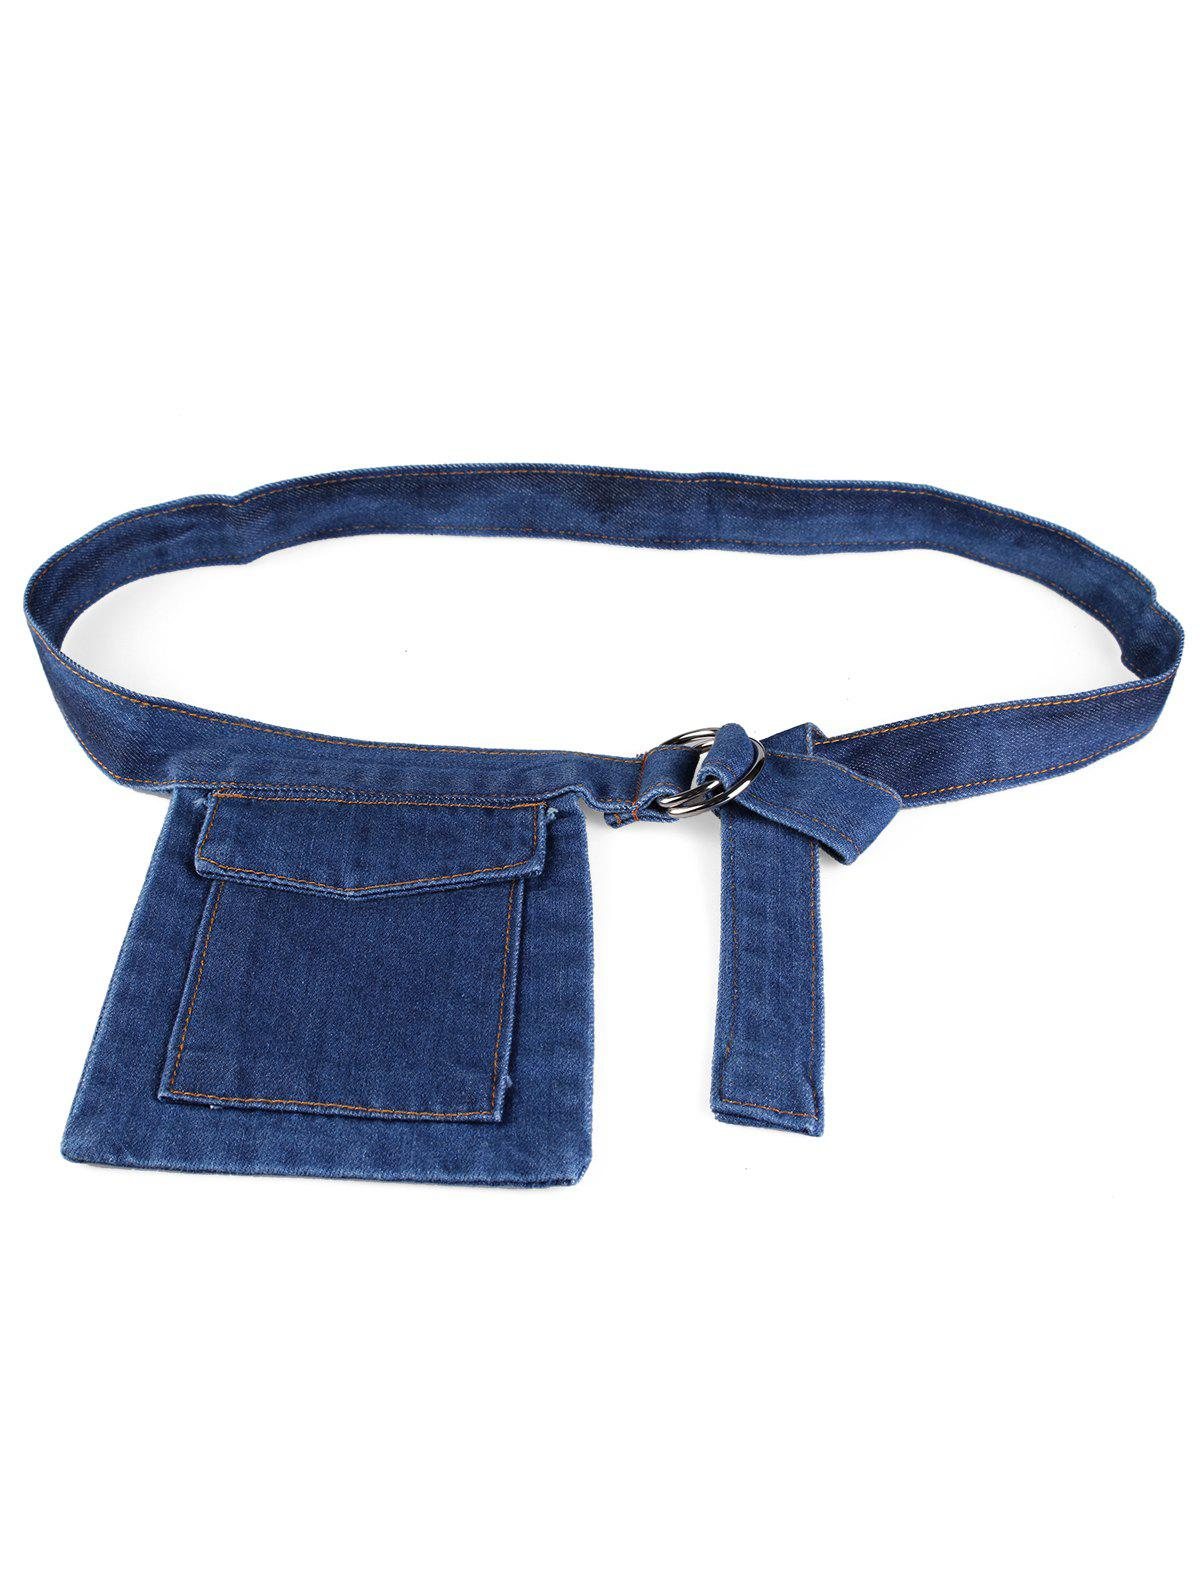 Fanny Pack Decorated Denim Travel Running Waist Belt - DENIM DARK BLUE